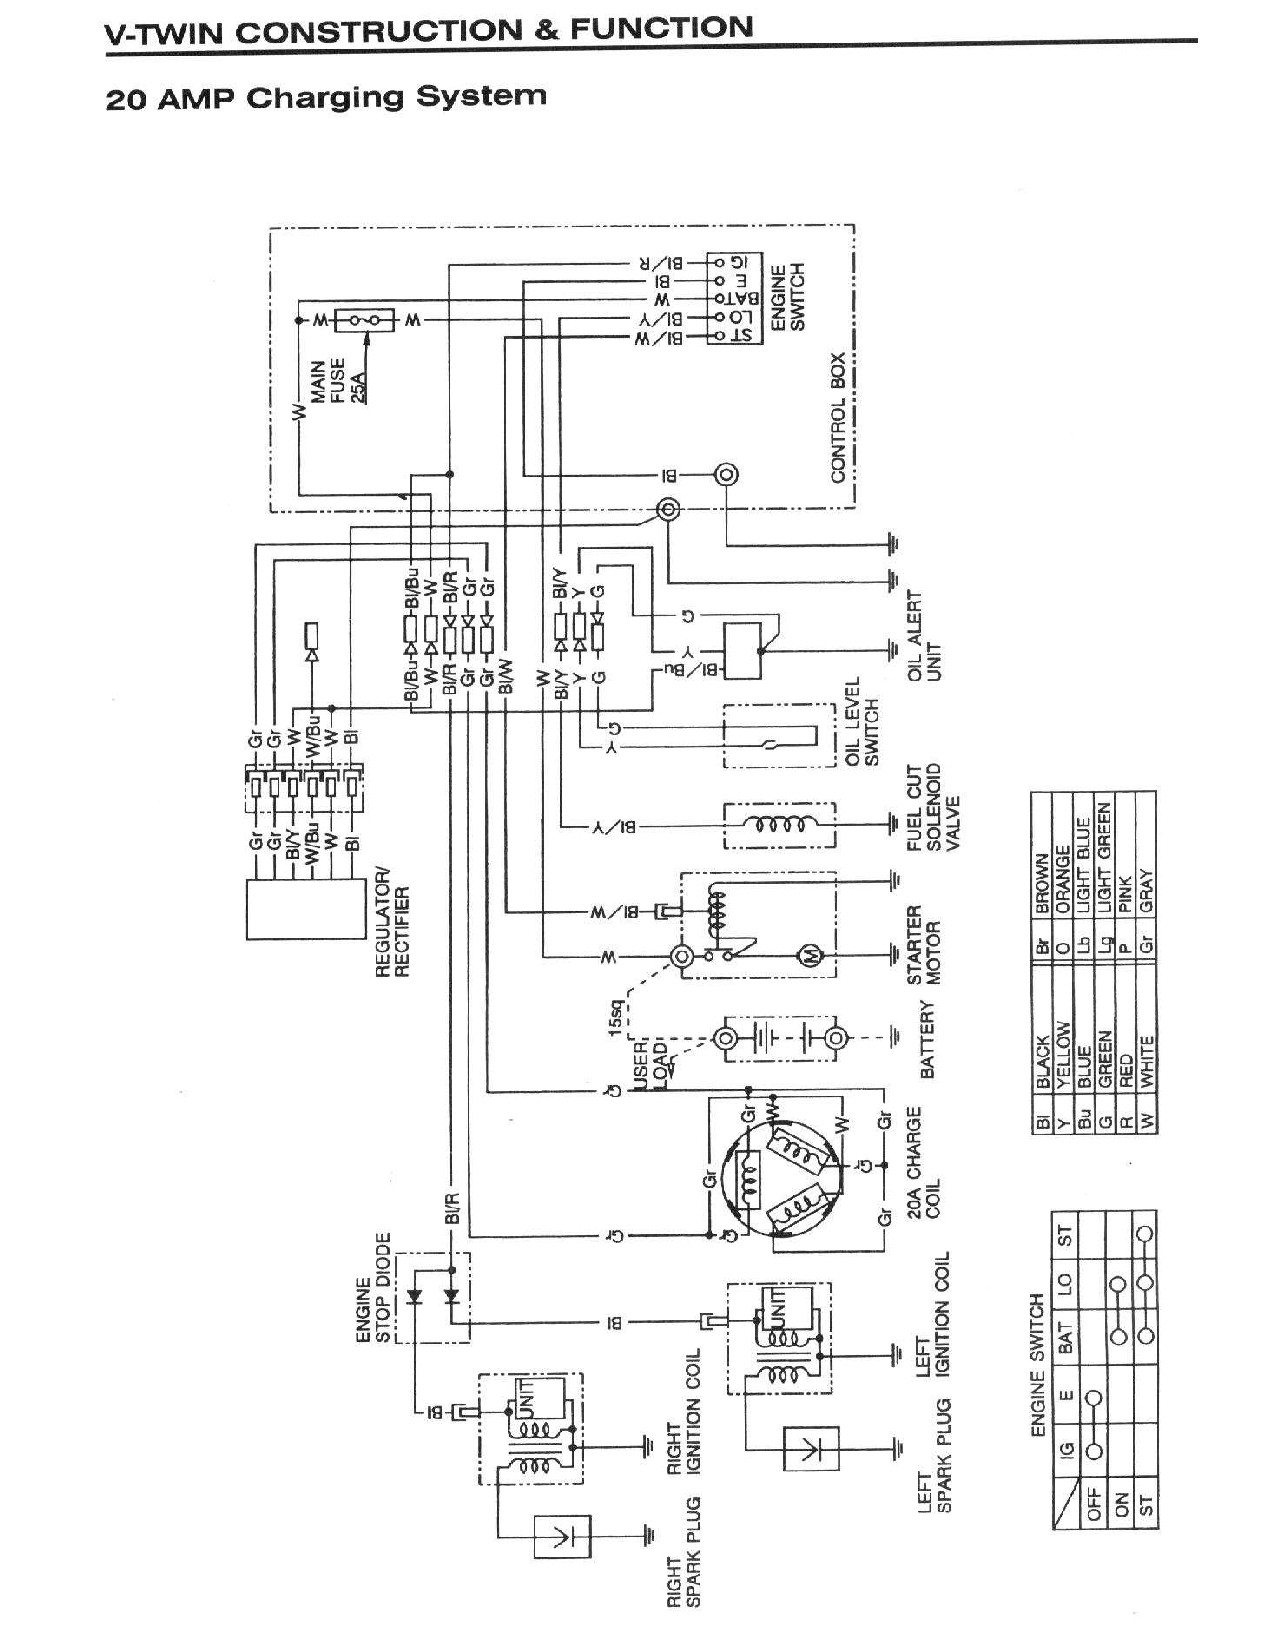 dell optiplex gx620 wiring diagram free download  u2022 oasis